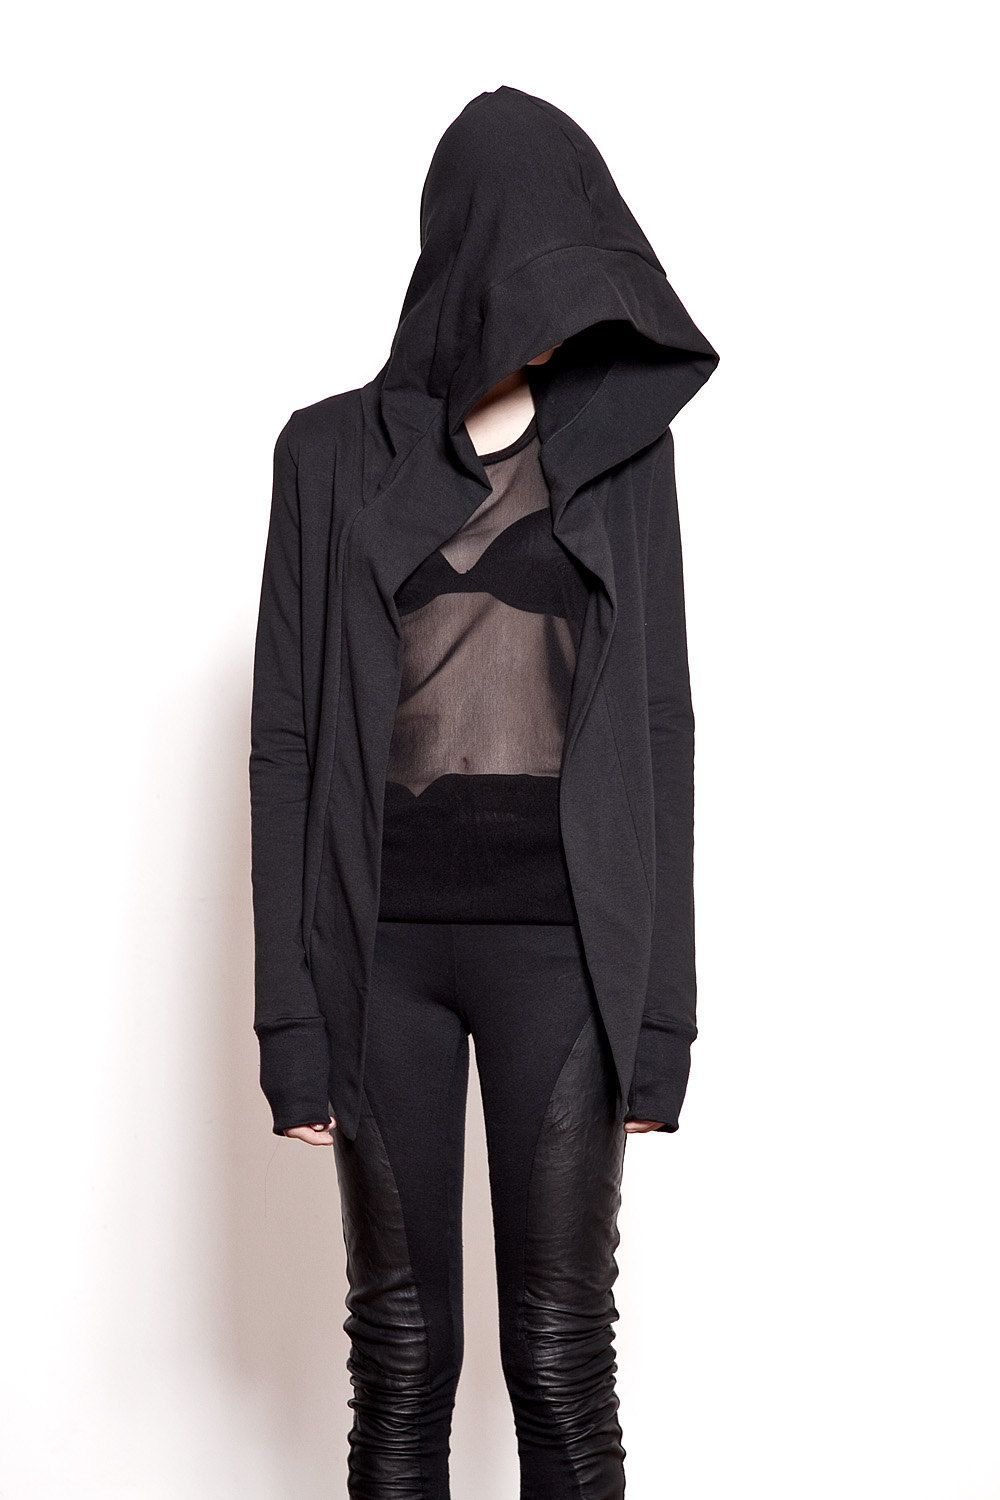 Large hood and such a cozy looking sweater. The Valhalla Hoodie from Ovate 00717e32e9d